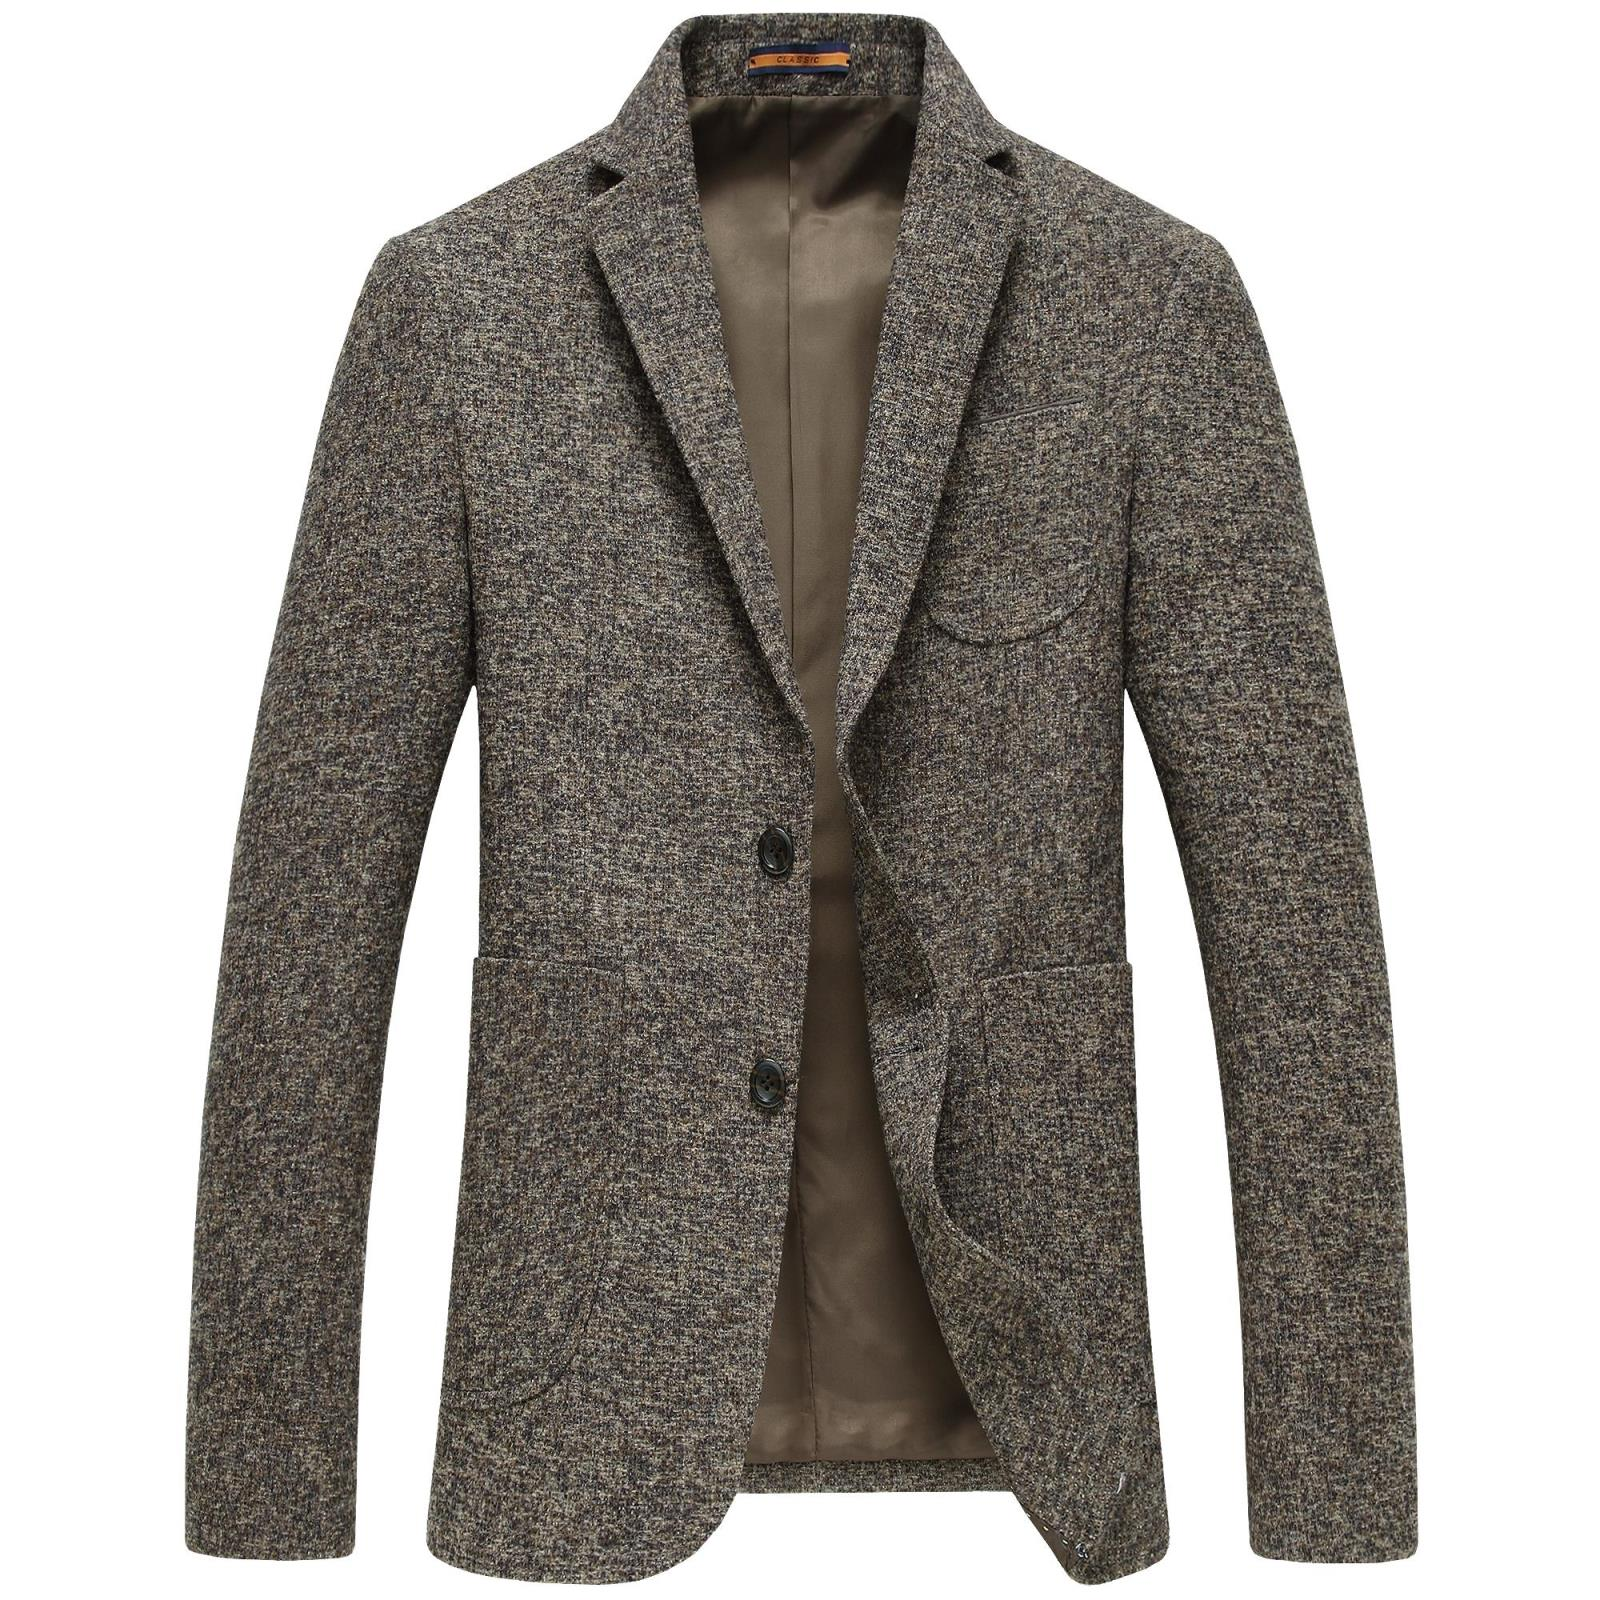 Casual Suits for Men Coat Dark brown Brand Slim Casual Jacket Masculine Fashion Jacket Formal Suit Blazer High-quality Gent Life